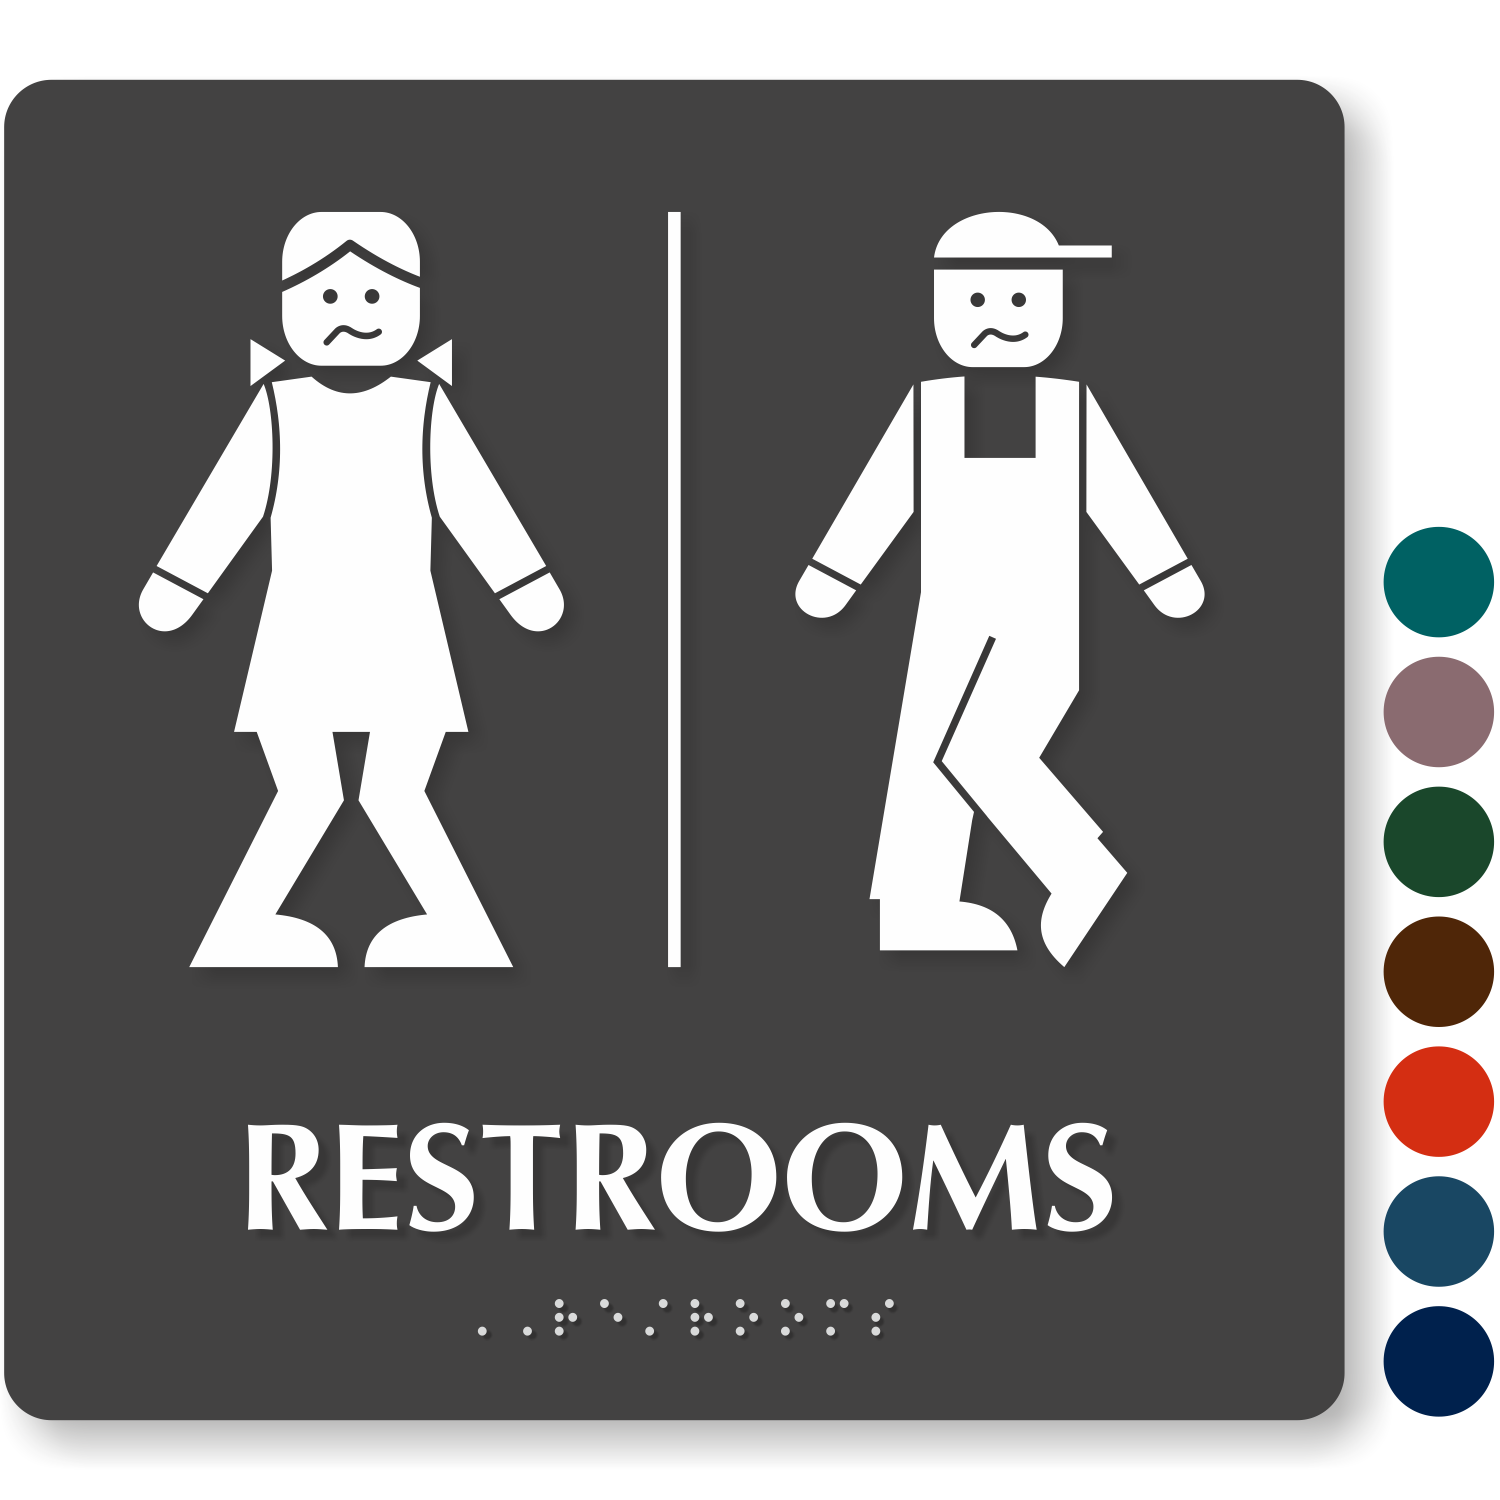 image regarding Printable Bathroom Sign named Free of charge Rest room Indications Down load PDF